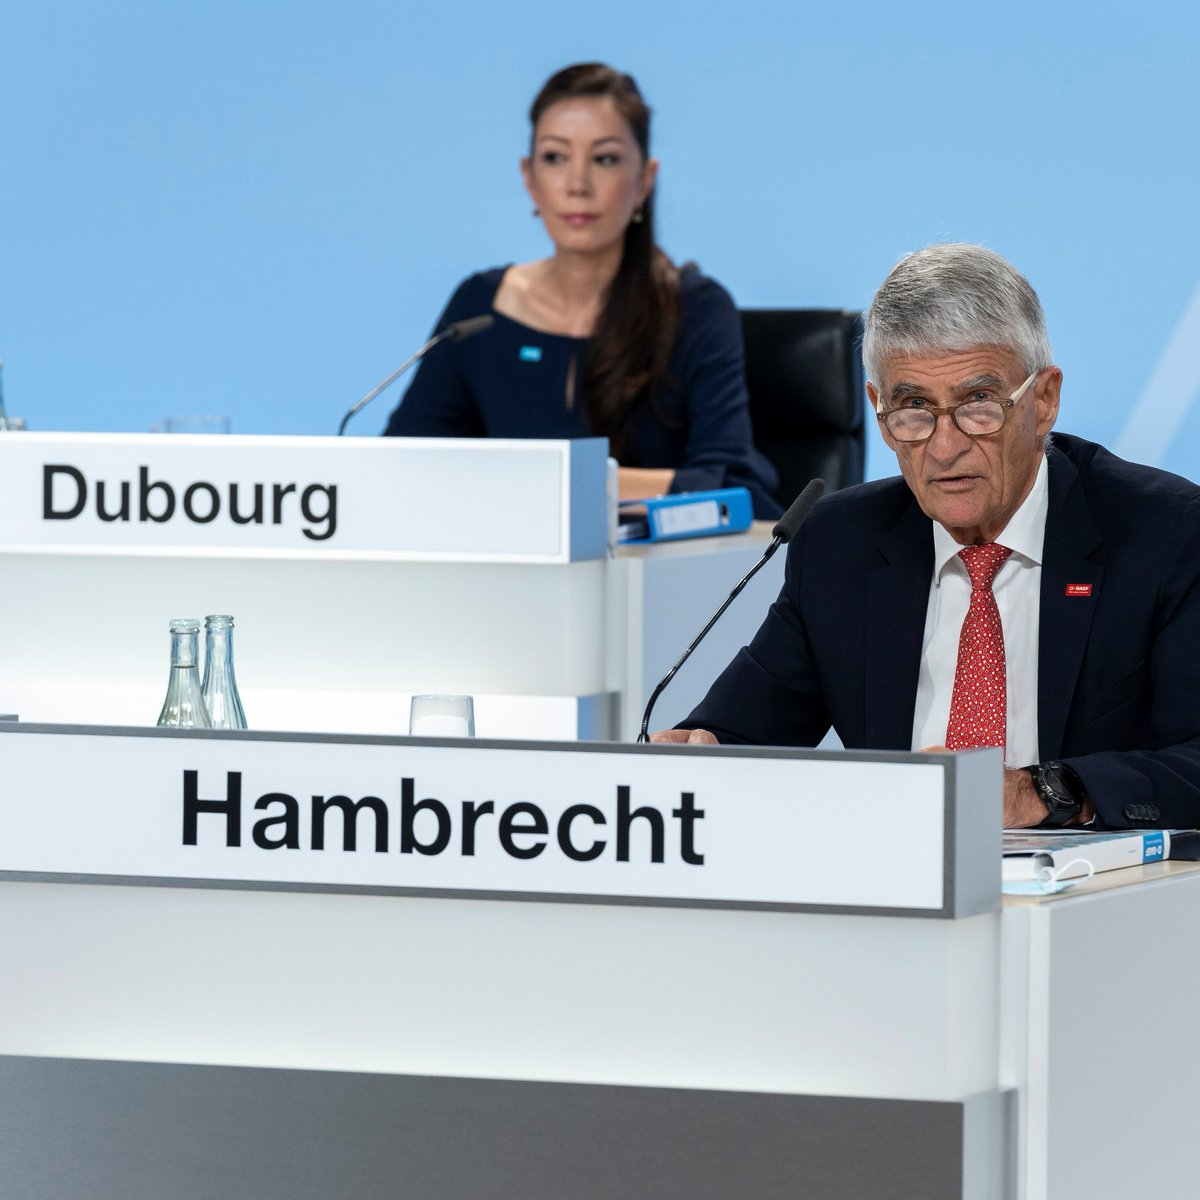 Did you miss our today's annual shareholders' meeting? Then have a look at our impressions! We are also taking you behind the scences in our picture gallery. #BASF_ASM https://t.co/L5JHxKUhLC